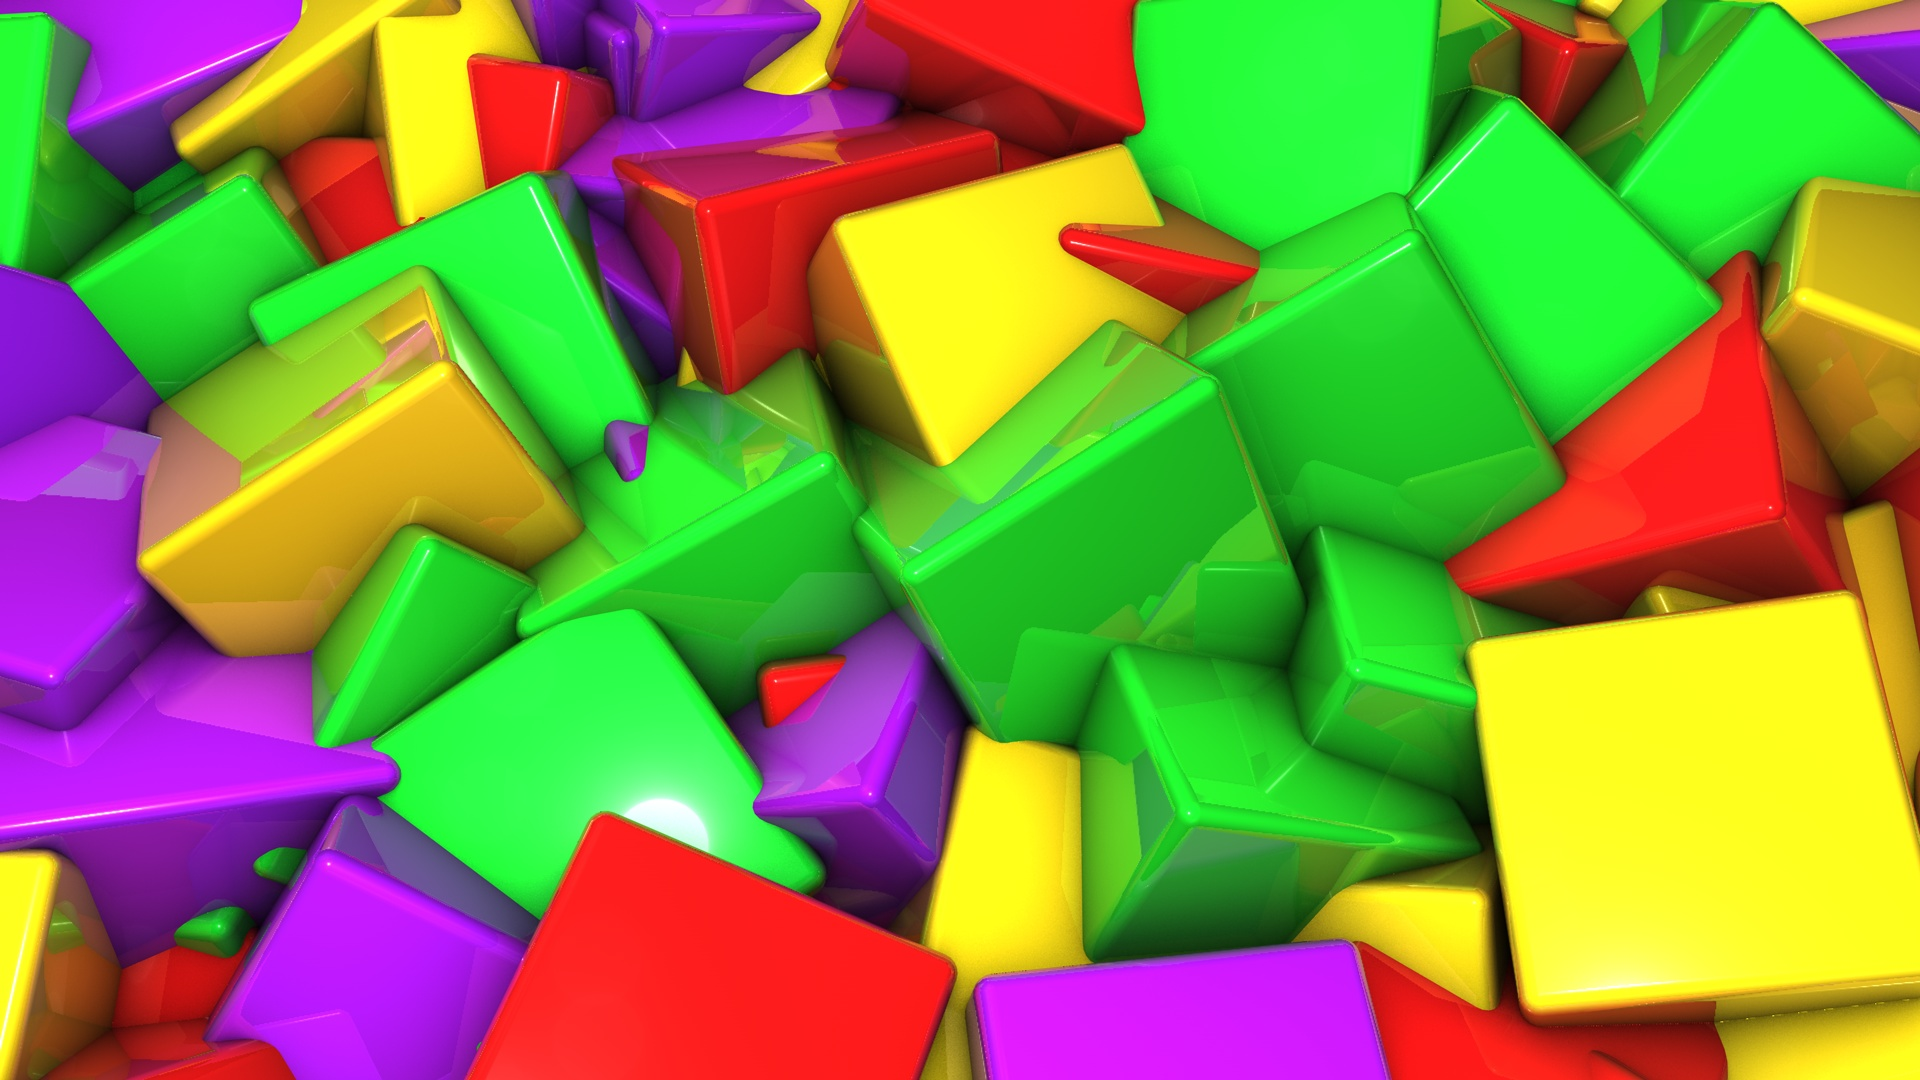 colorful 3d wallpapers hd